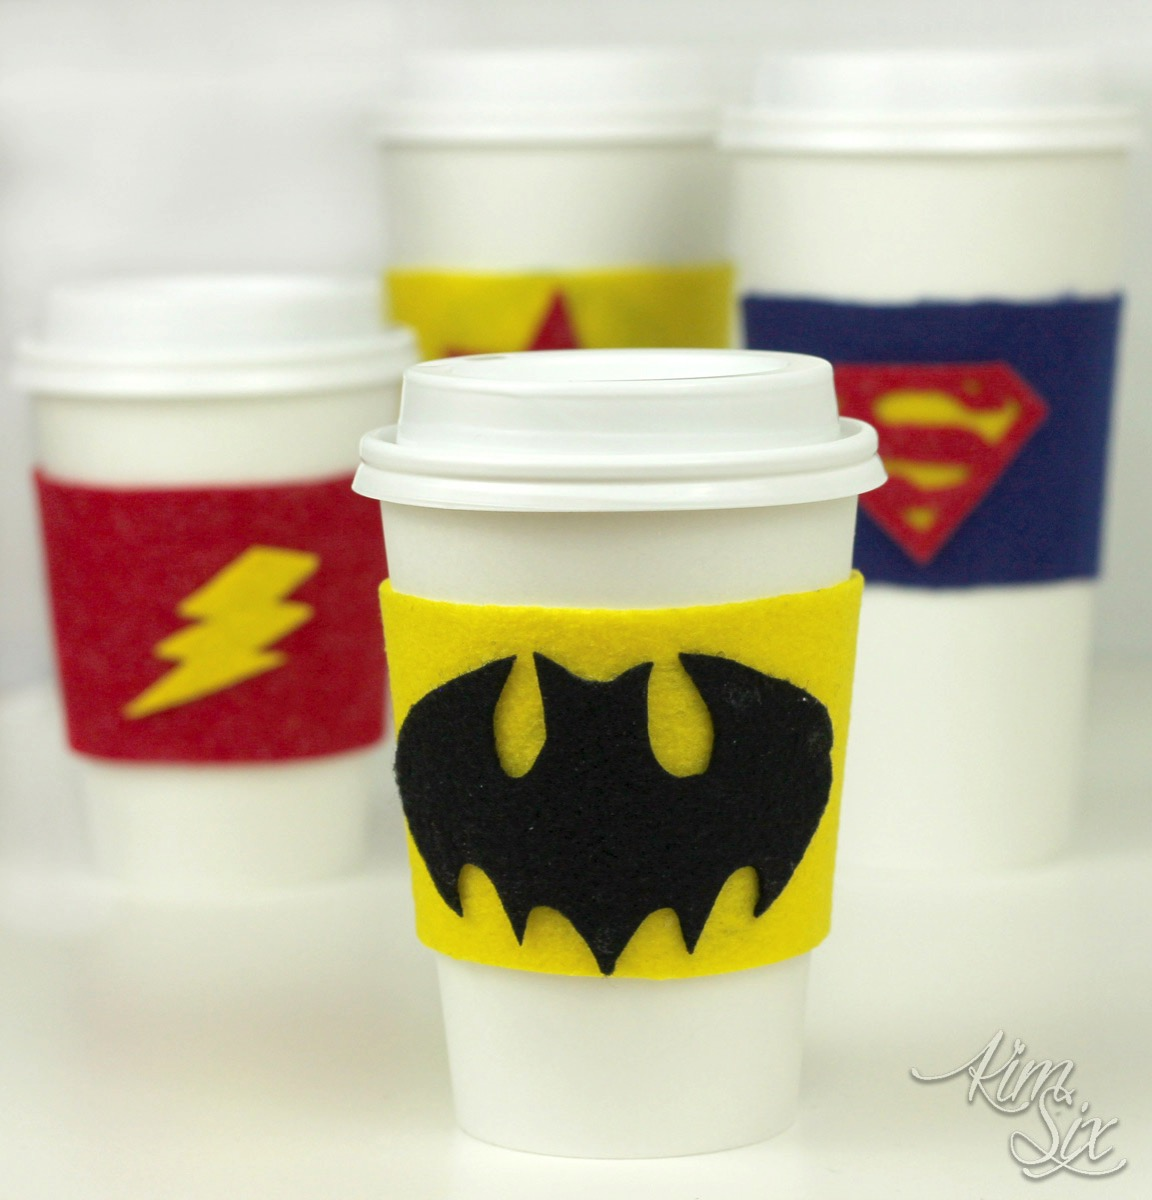 Super hero felt cup coozies